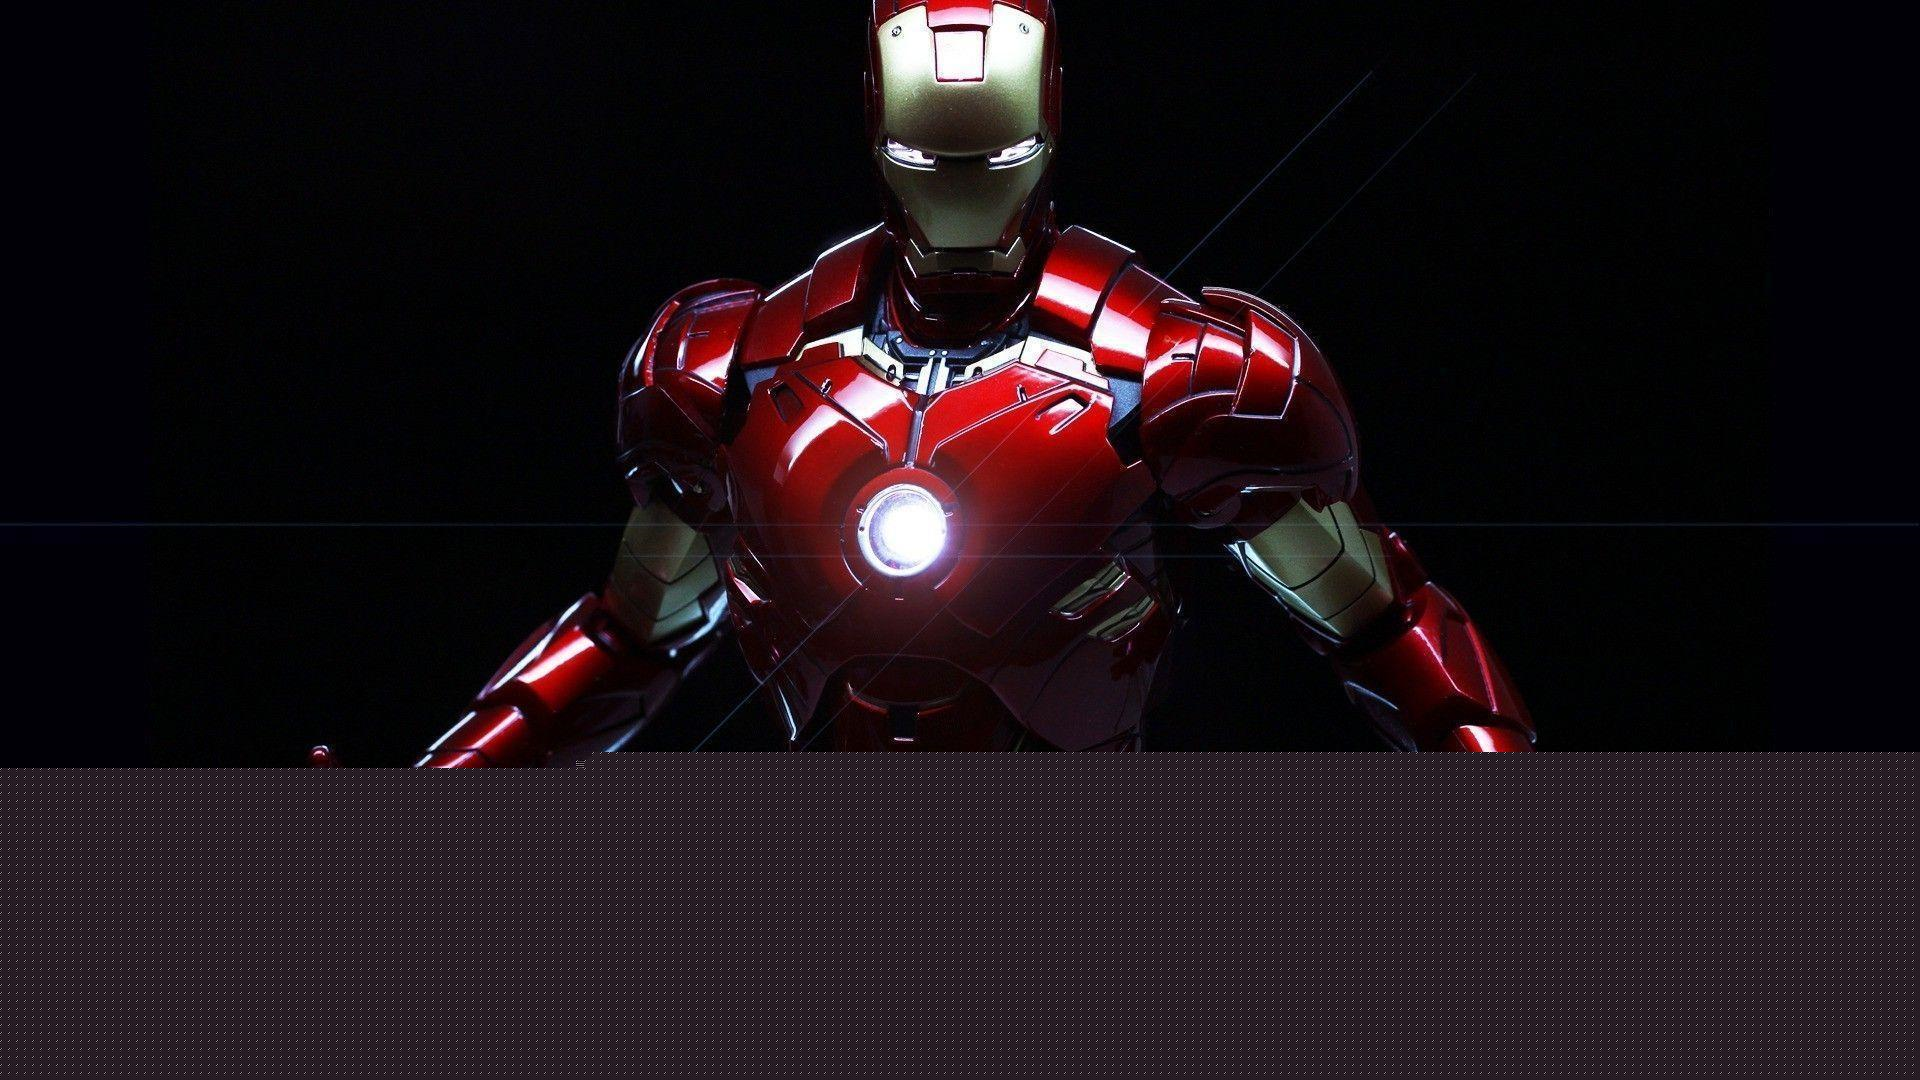 Stunning MCU Ironman Wallpaper Images for all